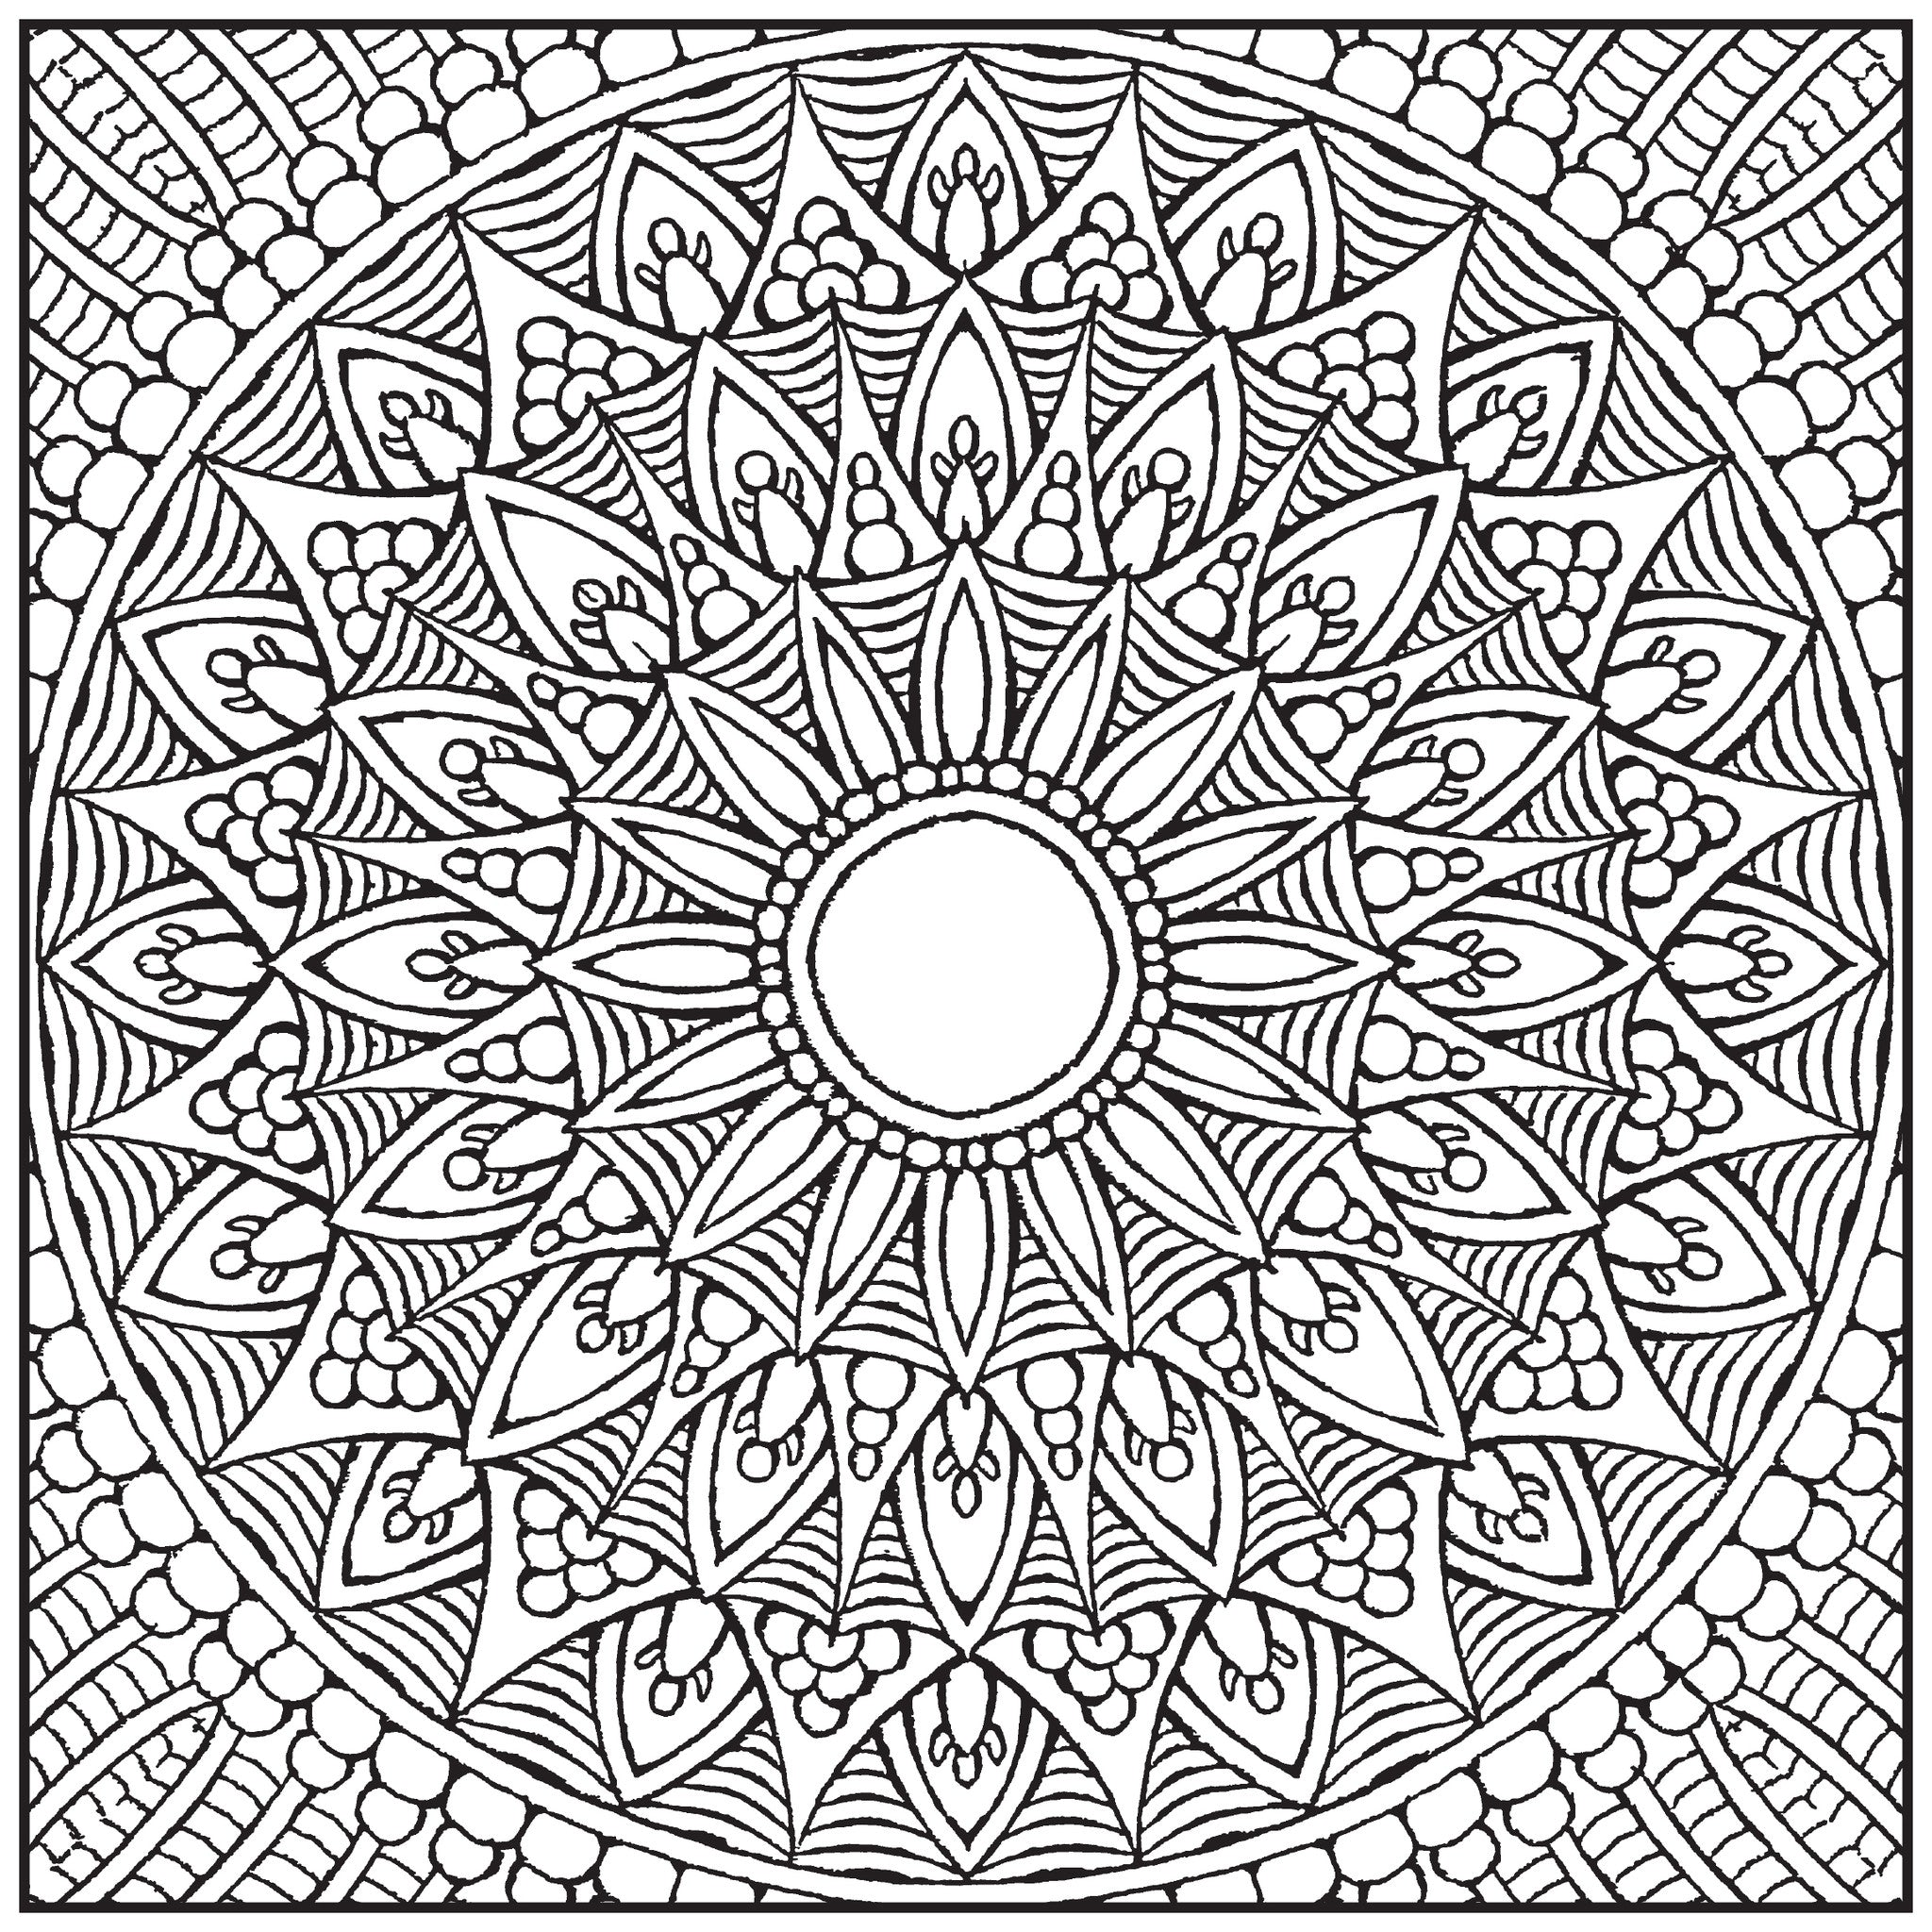 Color_With_Music_Mandalas_Adult_Coloring_Book_Blank_Page?v\u003d1472152881 as well as printable 33 lotus flower mandala coloring pages 5604 mandala on mandala coloring pages for relaxation in addition printable mandala coloring relaxation with mandala coloring pages on mandala coloring pages for relaxation as well as printable mandala coloring relaxation with intricate designs in on mandala coloring pages for relaxation including 15 amazingly relaxing free printable mandala coloring pages for on mandala coloring pages for relaxation